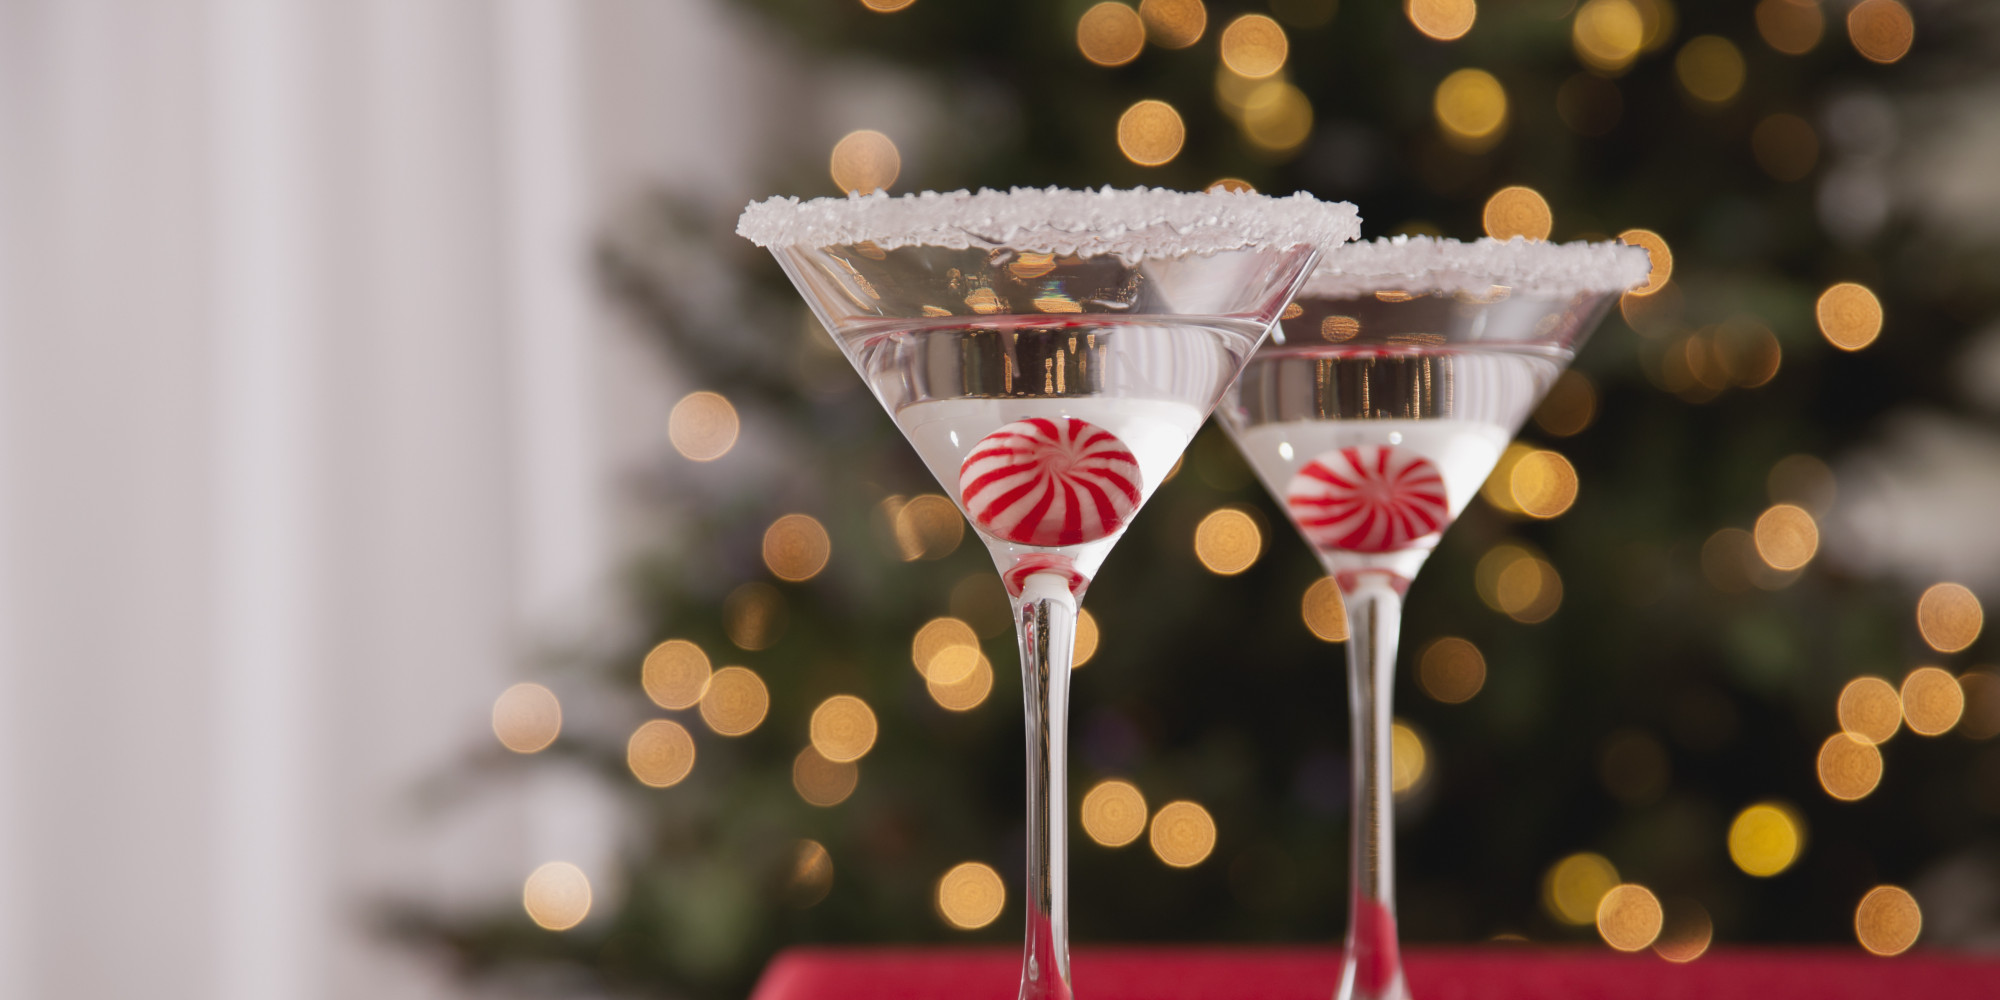 Charming Xmas Cocktail Party Ideas Part - 9: Huffington Post